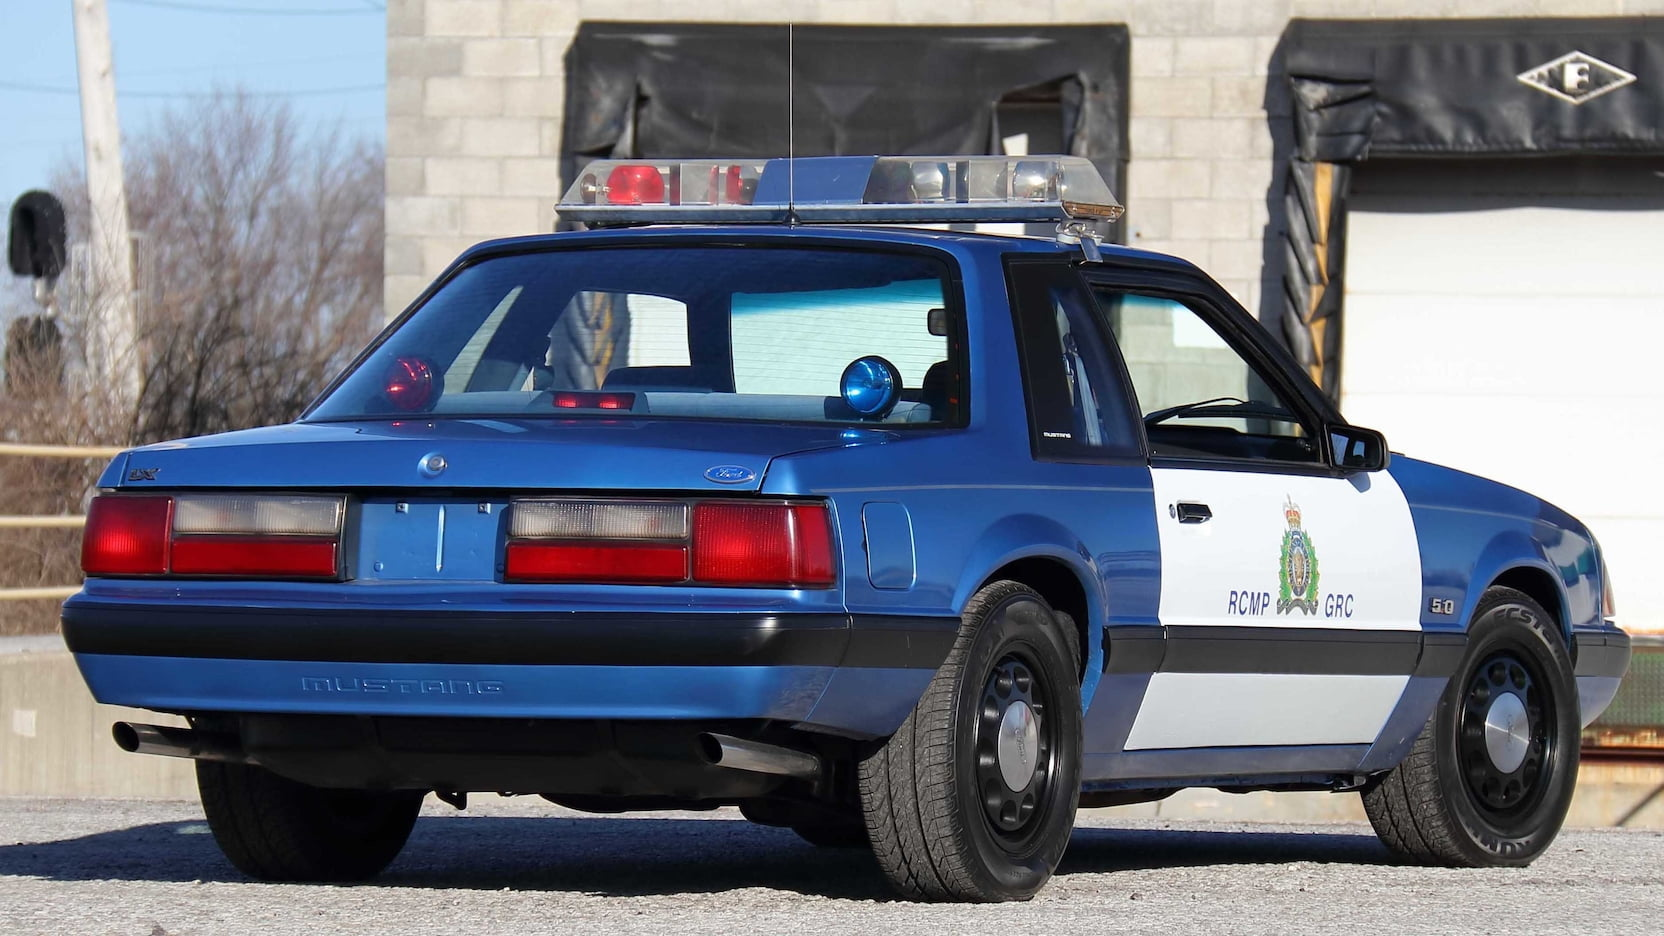 1989 Ford Mustang ssp police car rear three-quarter